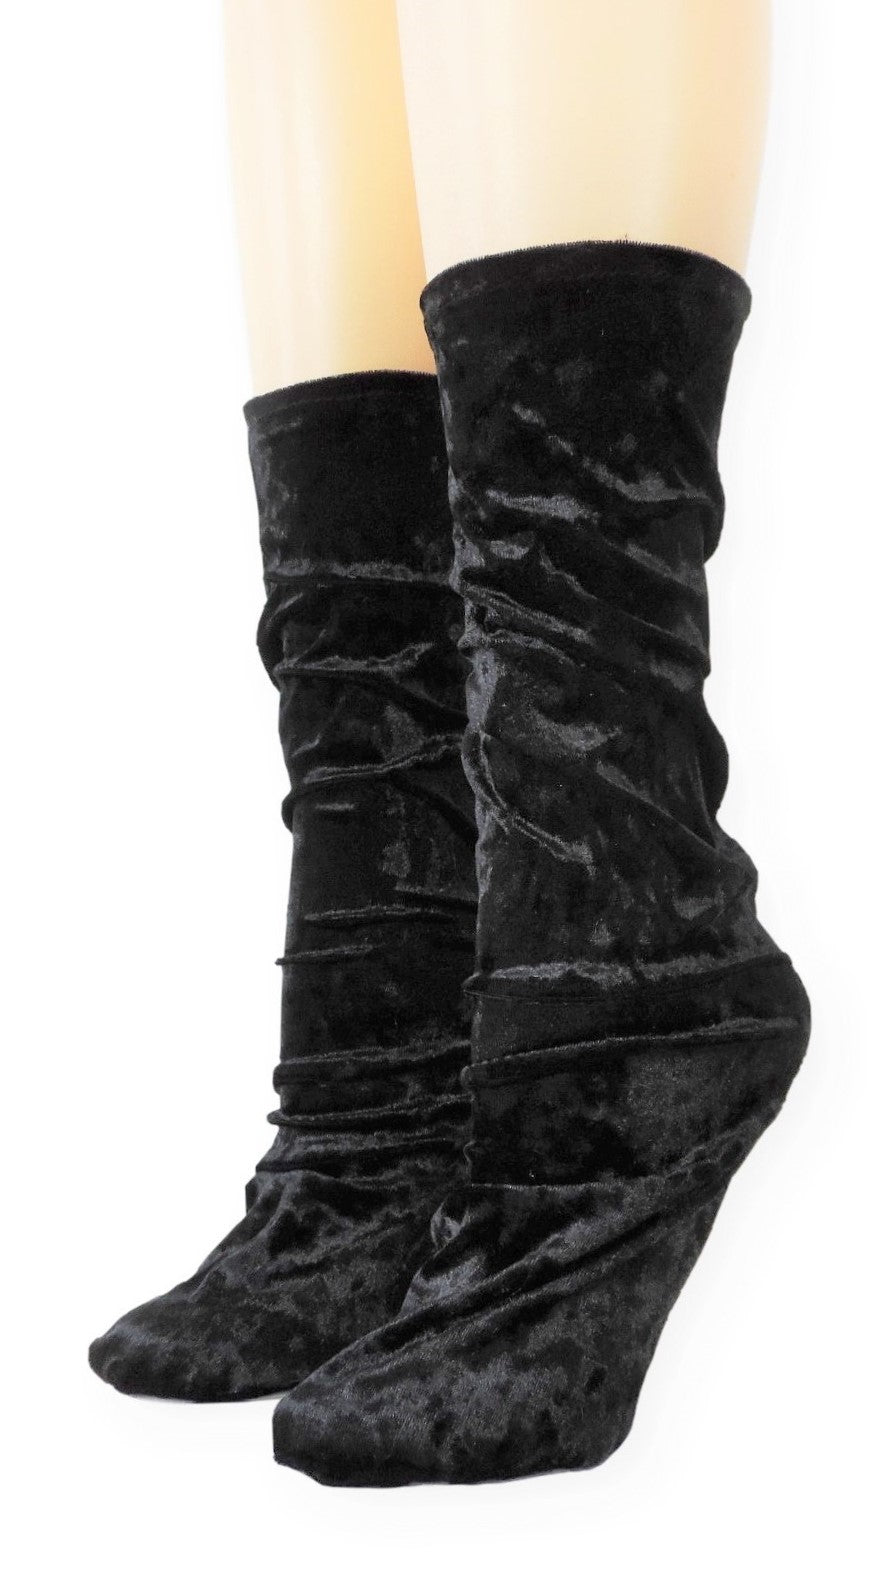 Black Crushed Velvet Socks - Global Trendz Fashion®